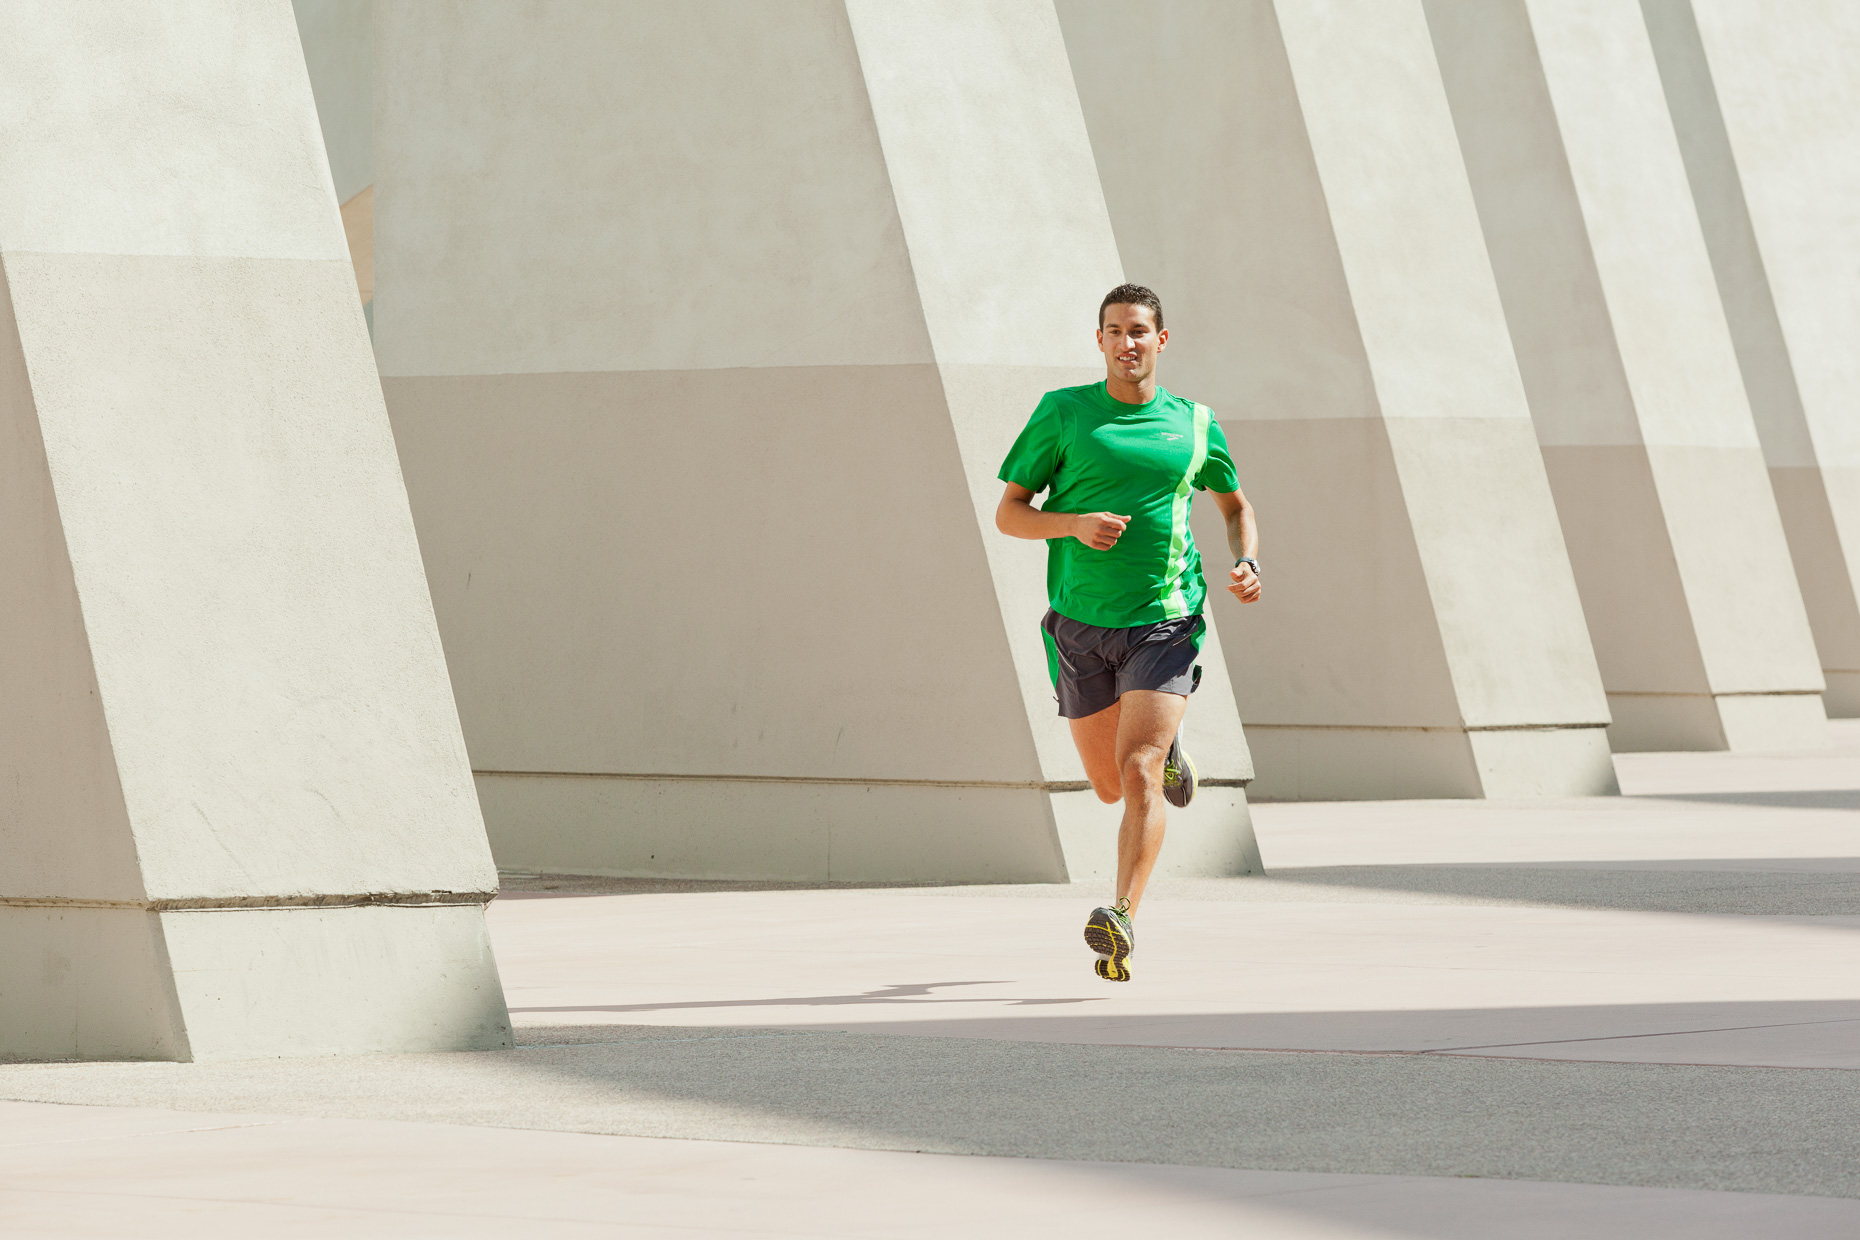 Man running with concrete diagonal structure in background. San Diego, California. Fitness by David Zaitz Photography.